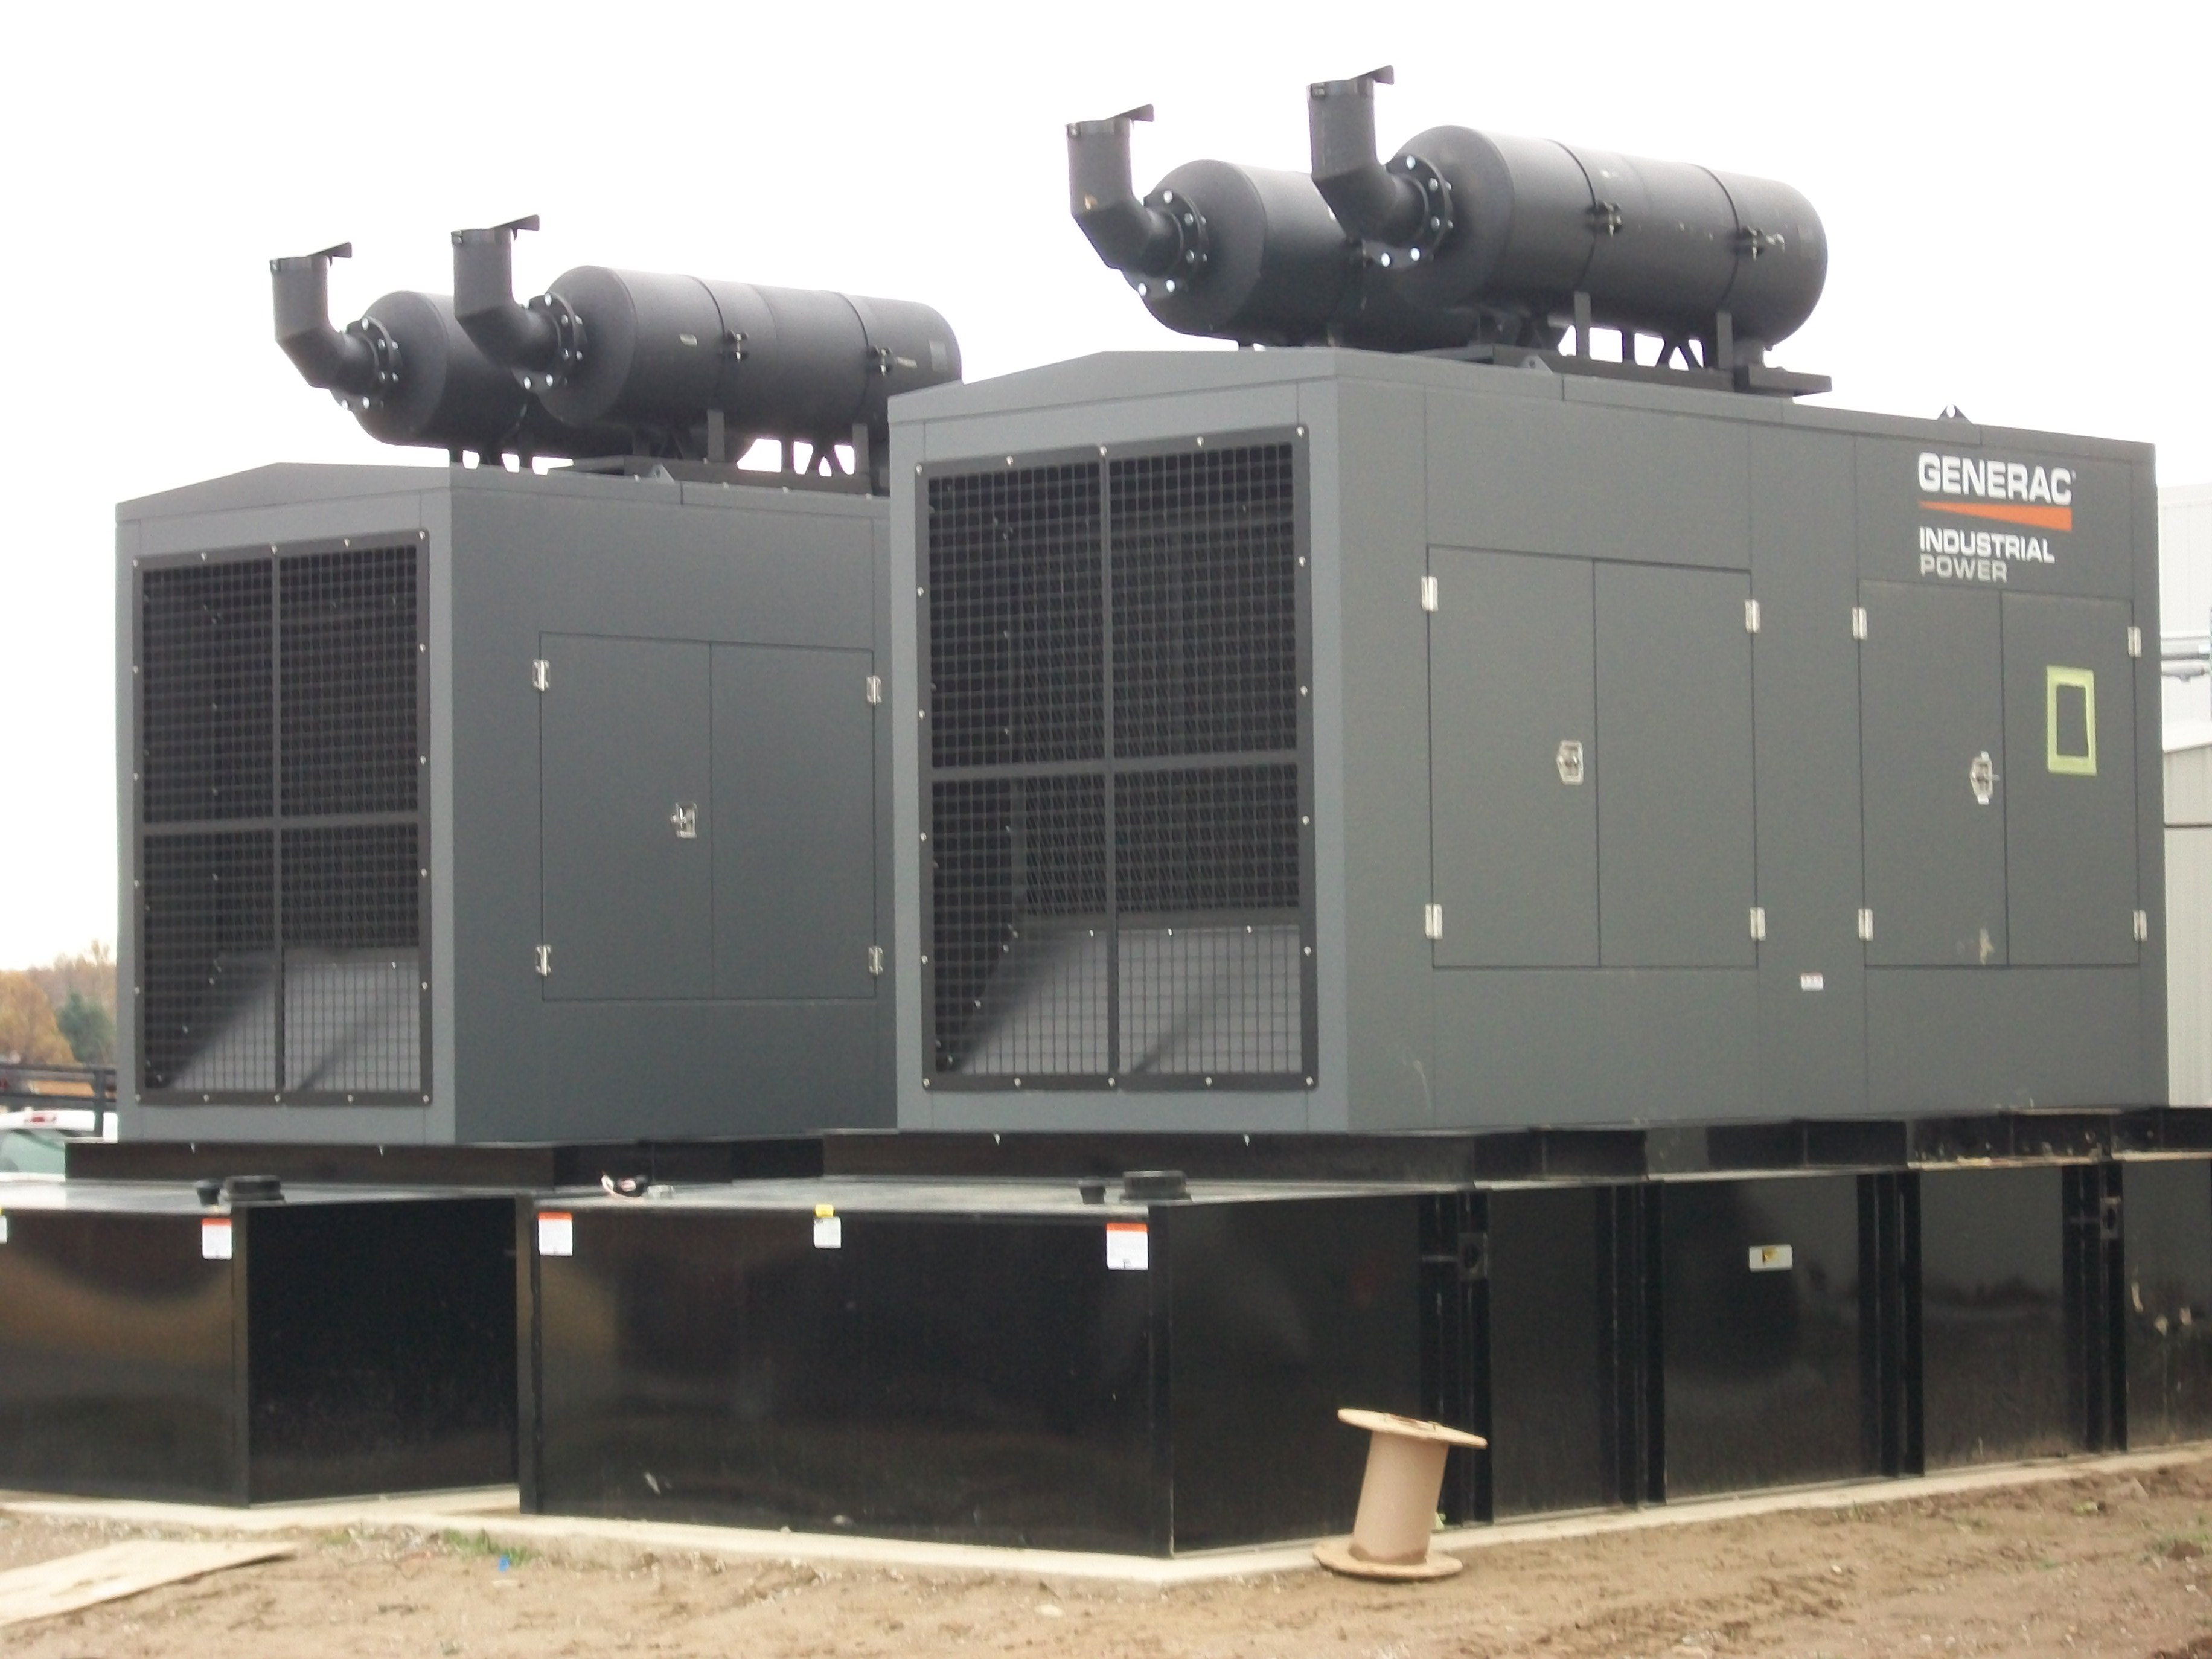 Industrial power systems by Generac